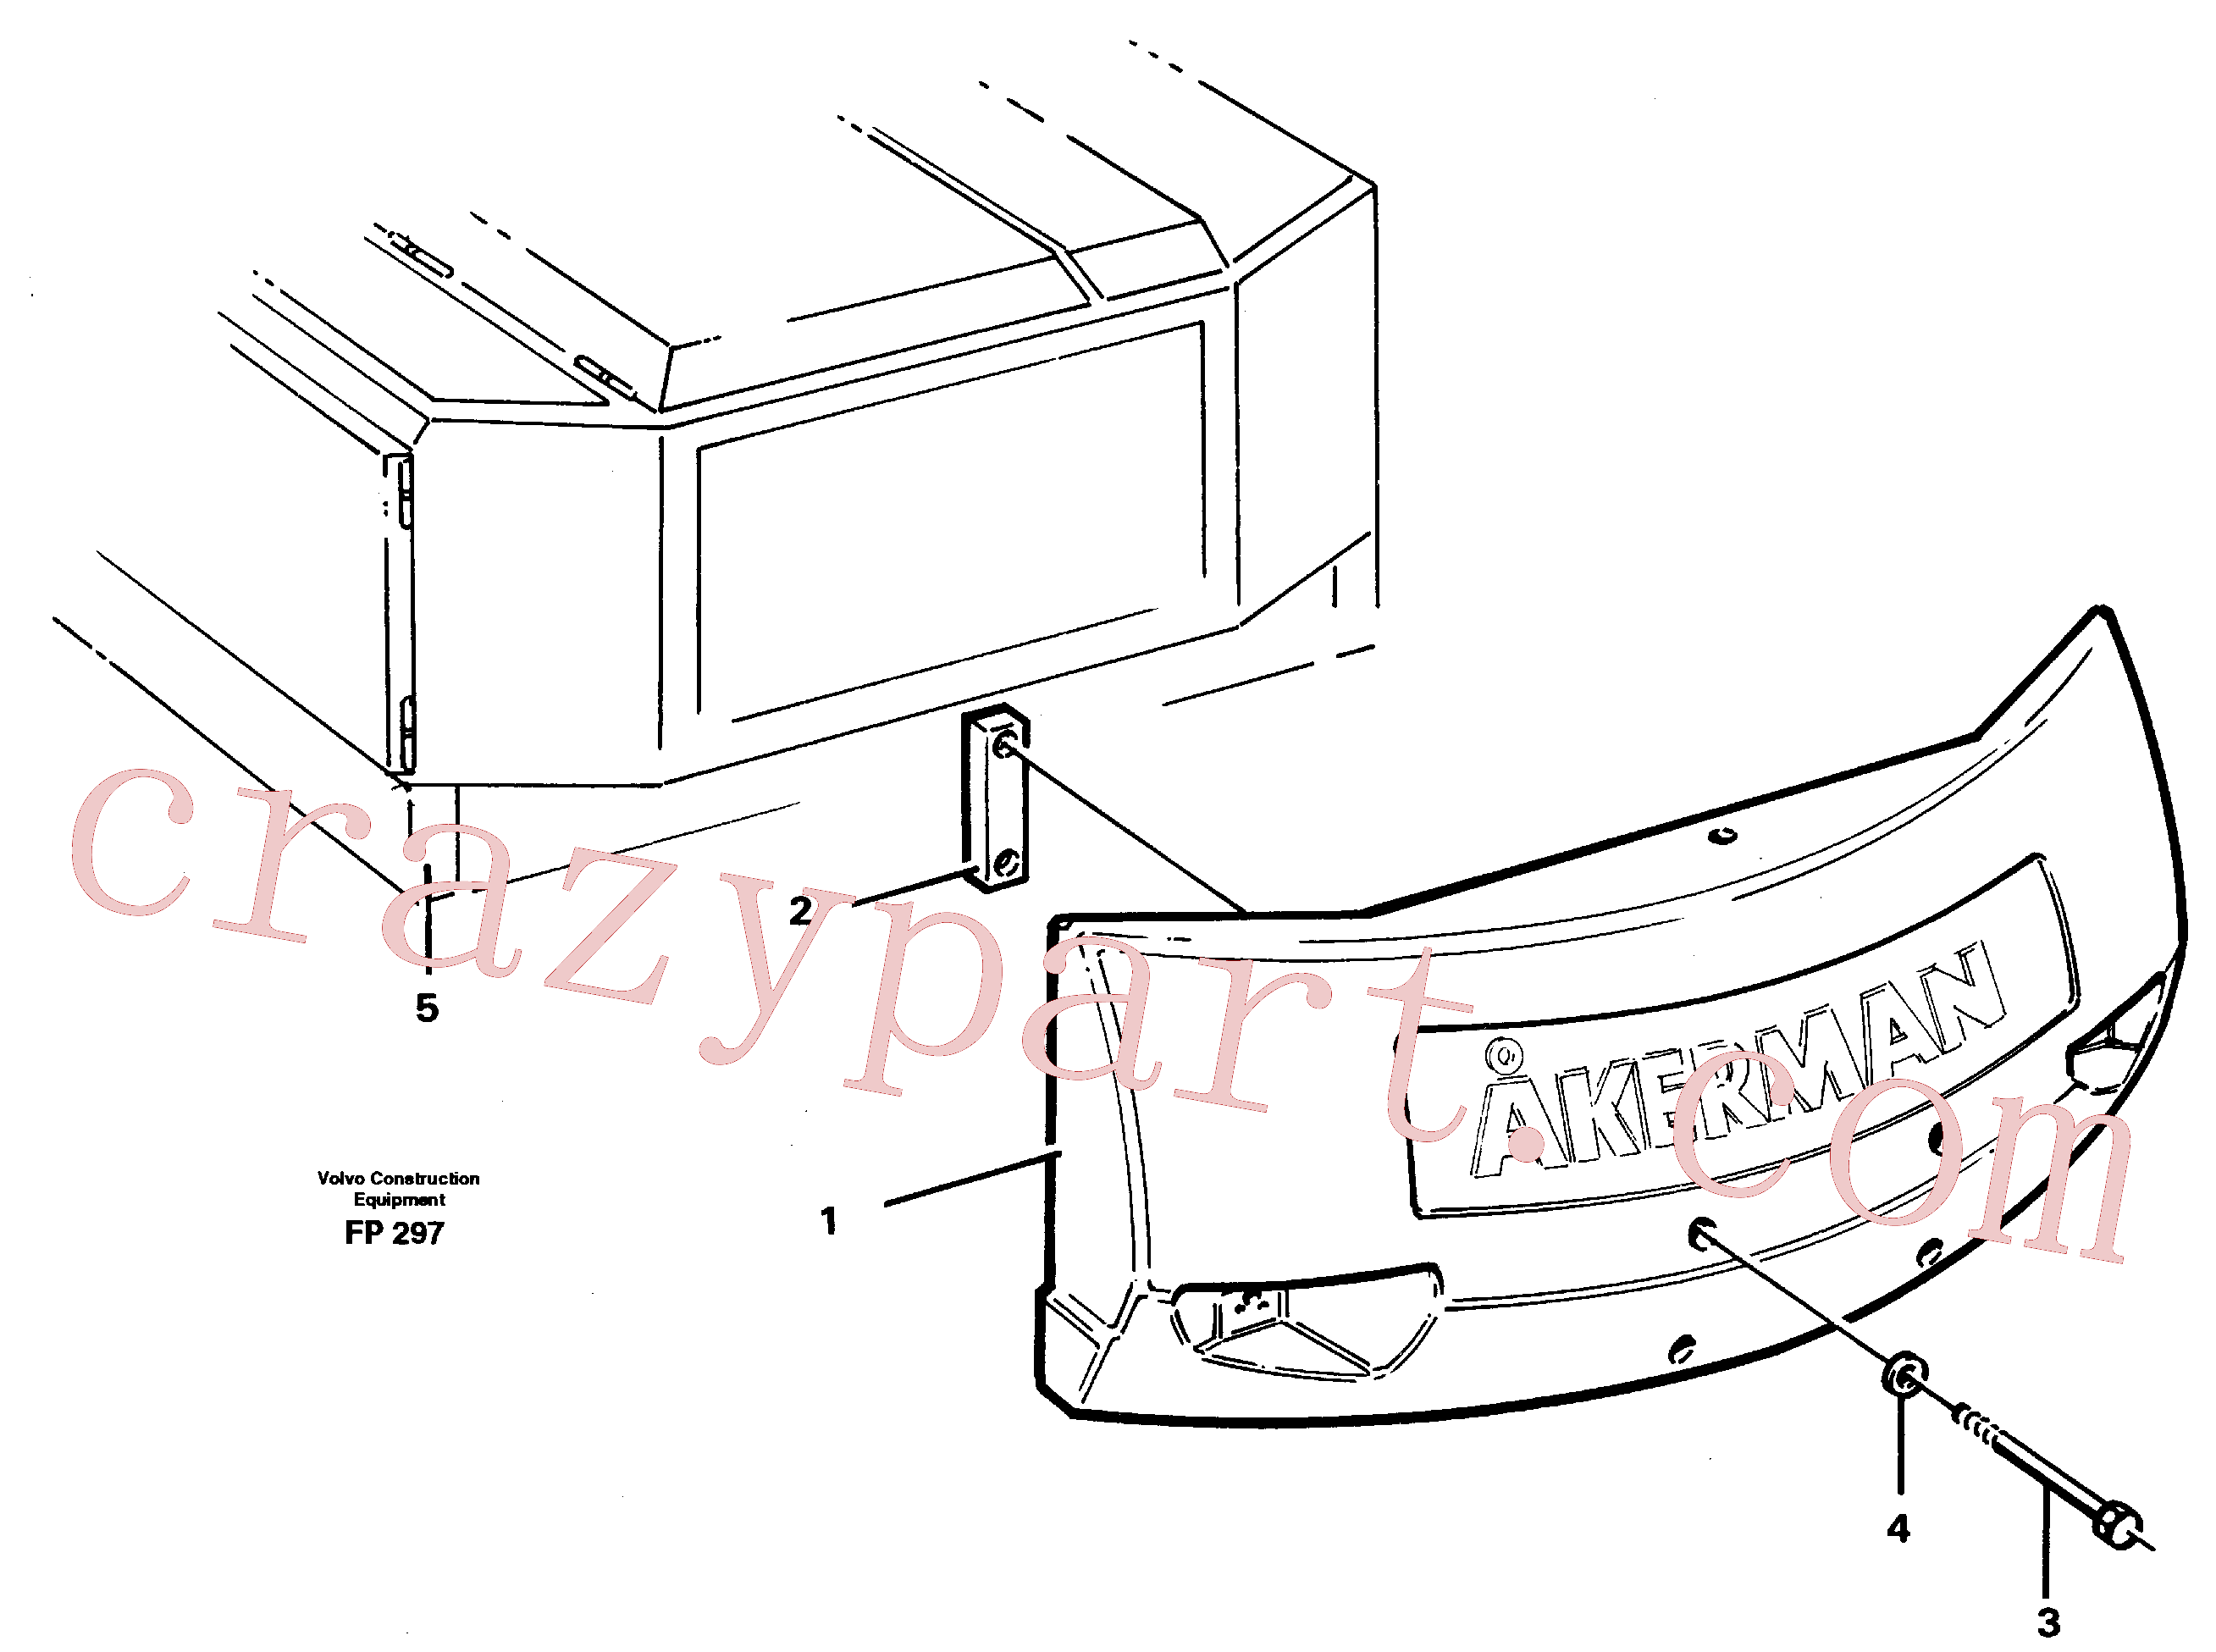 VOE928926 for Volvo Counterweights(FP297 assembly)